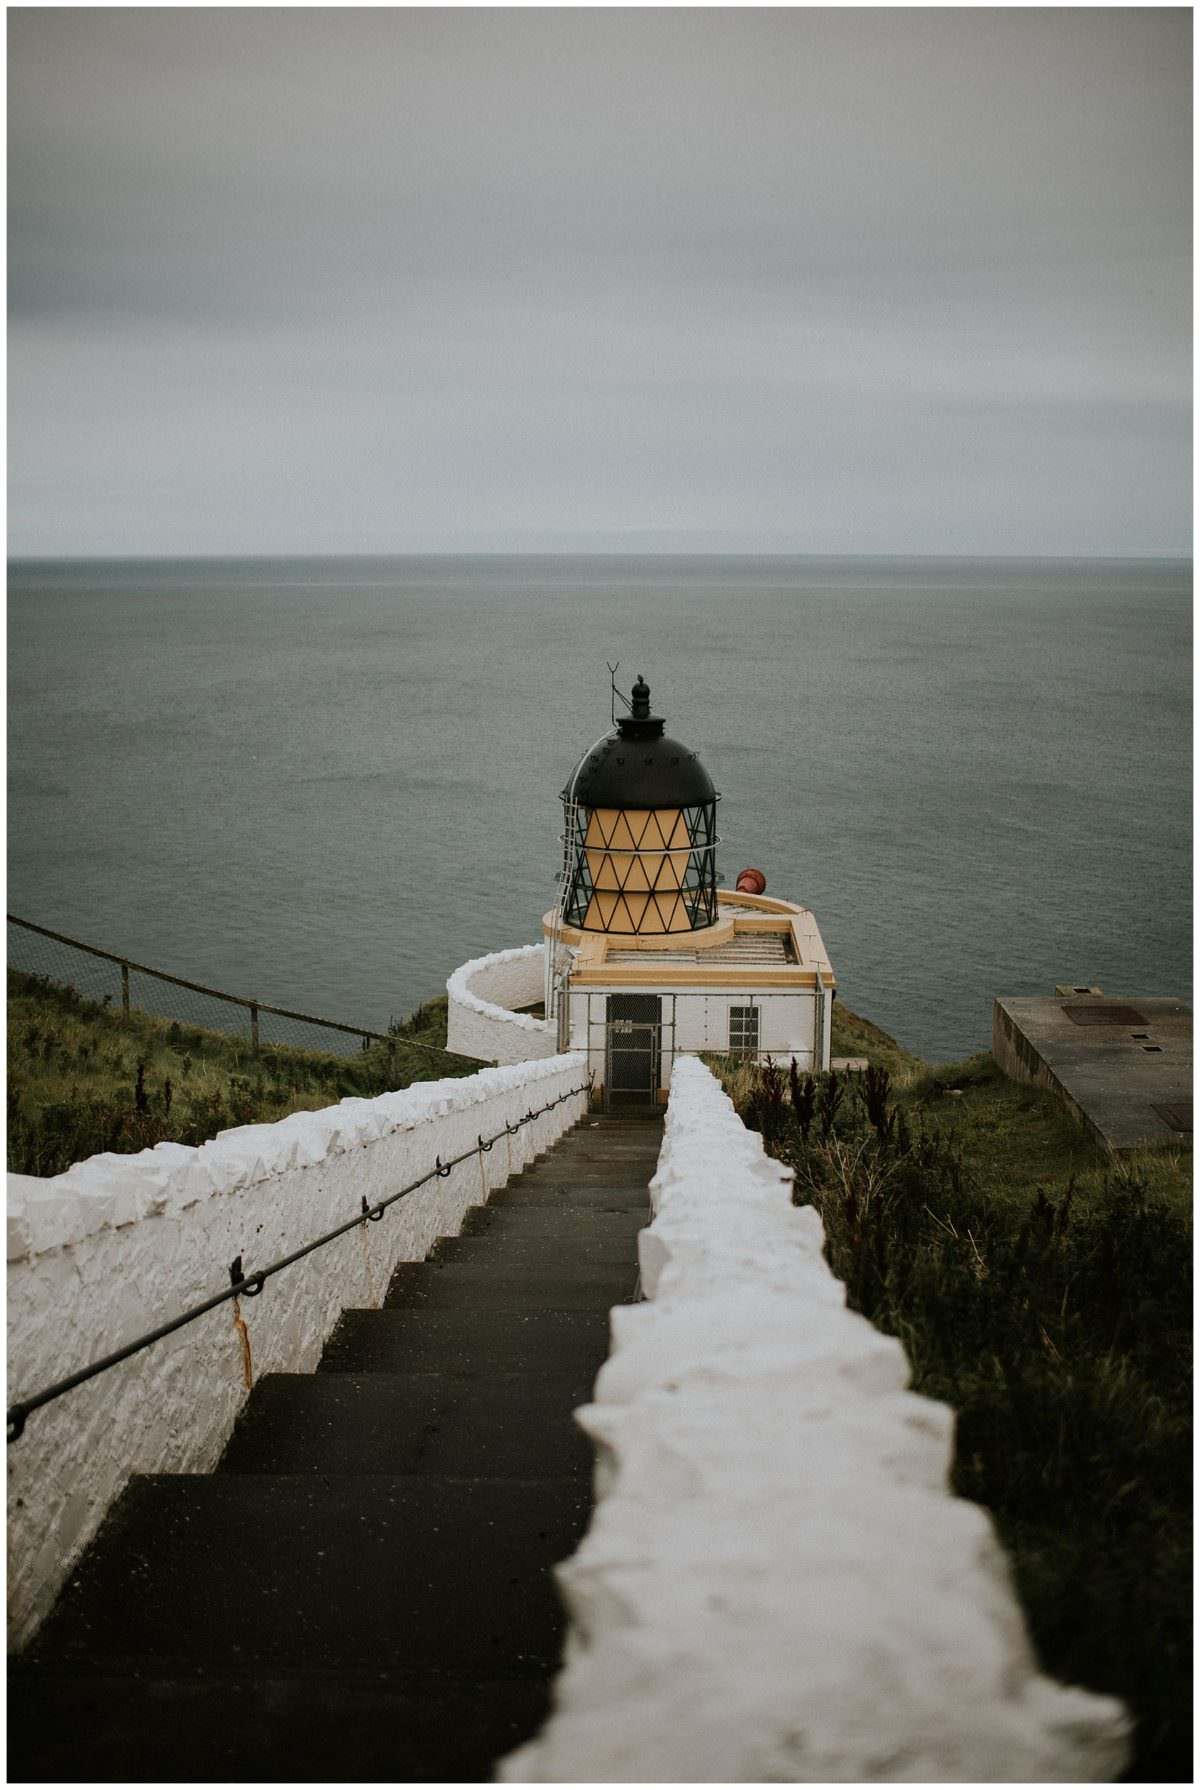 Lighthouse in St Abbs in the Scottish Borders - Edinburgh Scotland photographer